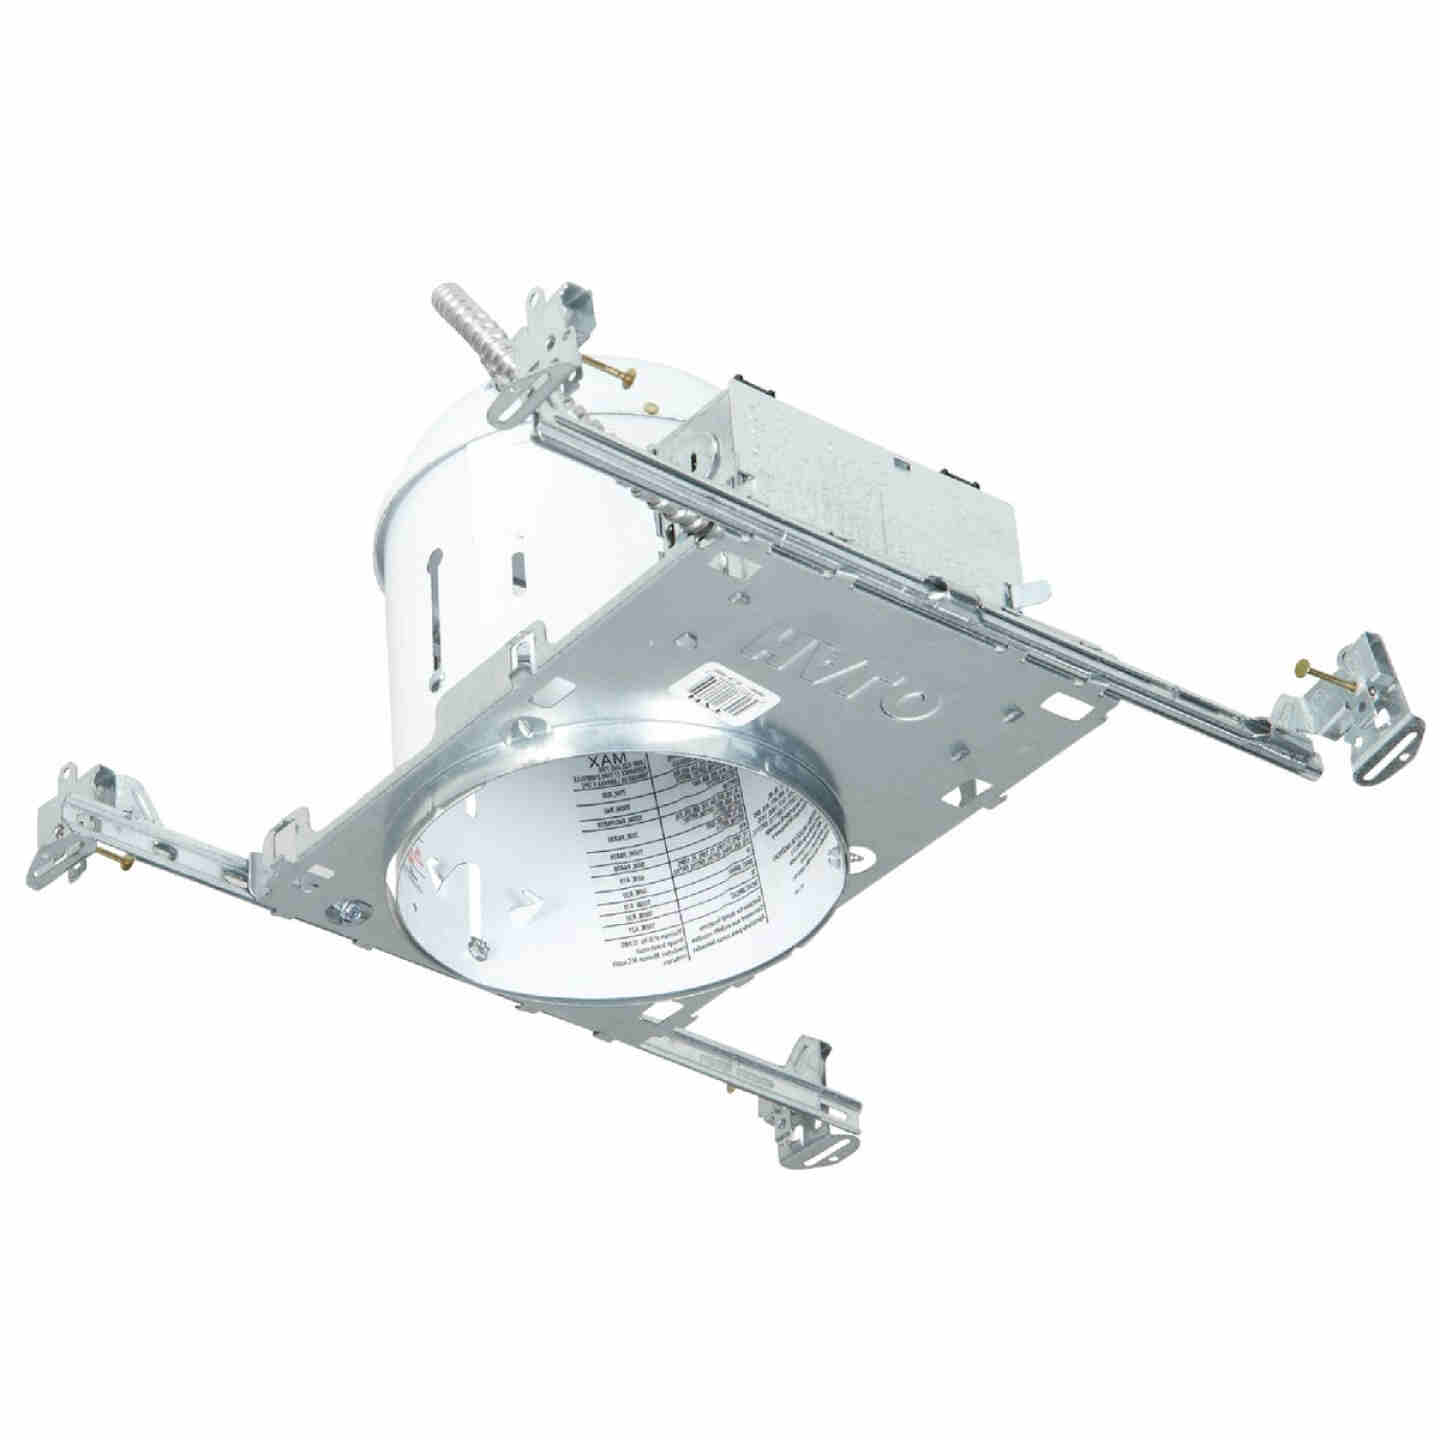 Halo 6 In. New Construction Non-IC Rated Recessed Light Fixture Image 1